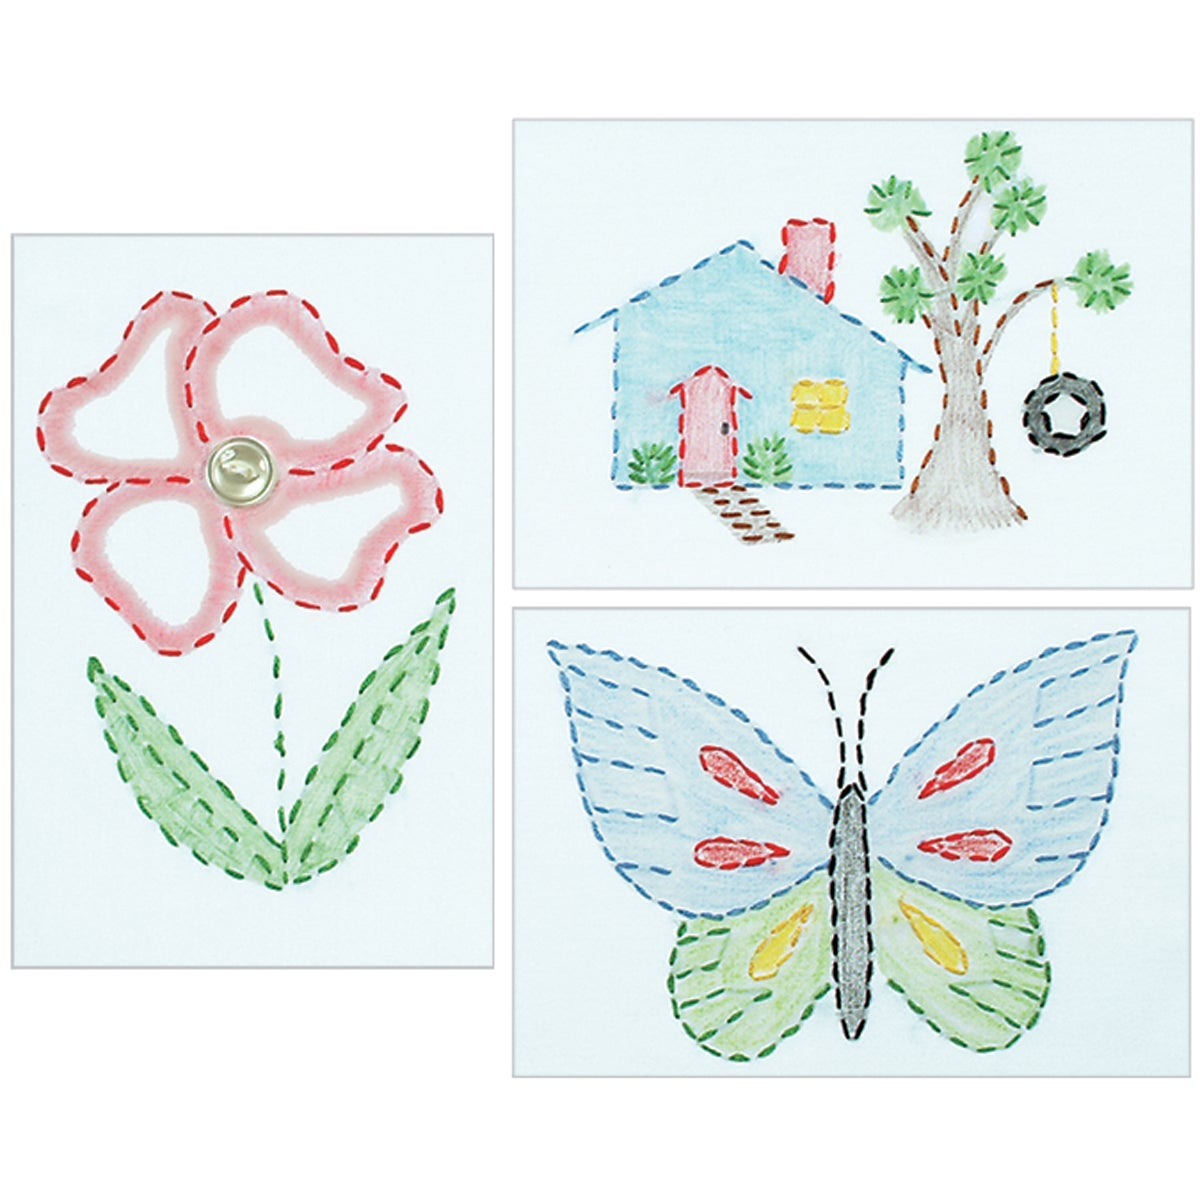 White Stamped Beginner Embroidery Kit 6quotX8quot Samplers 3Pkg